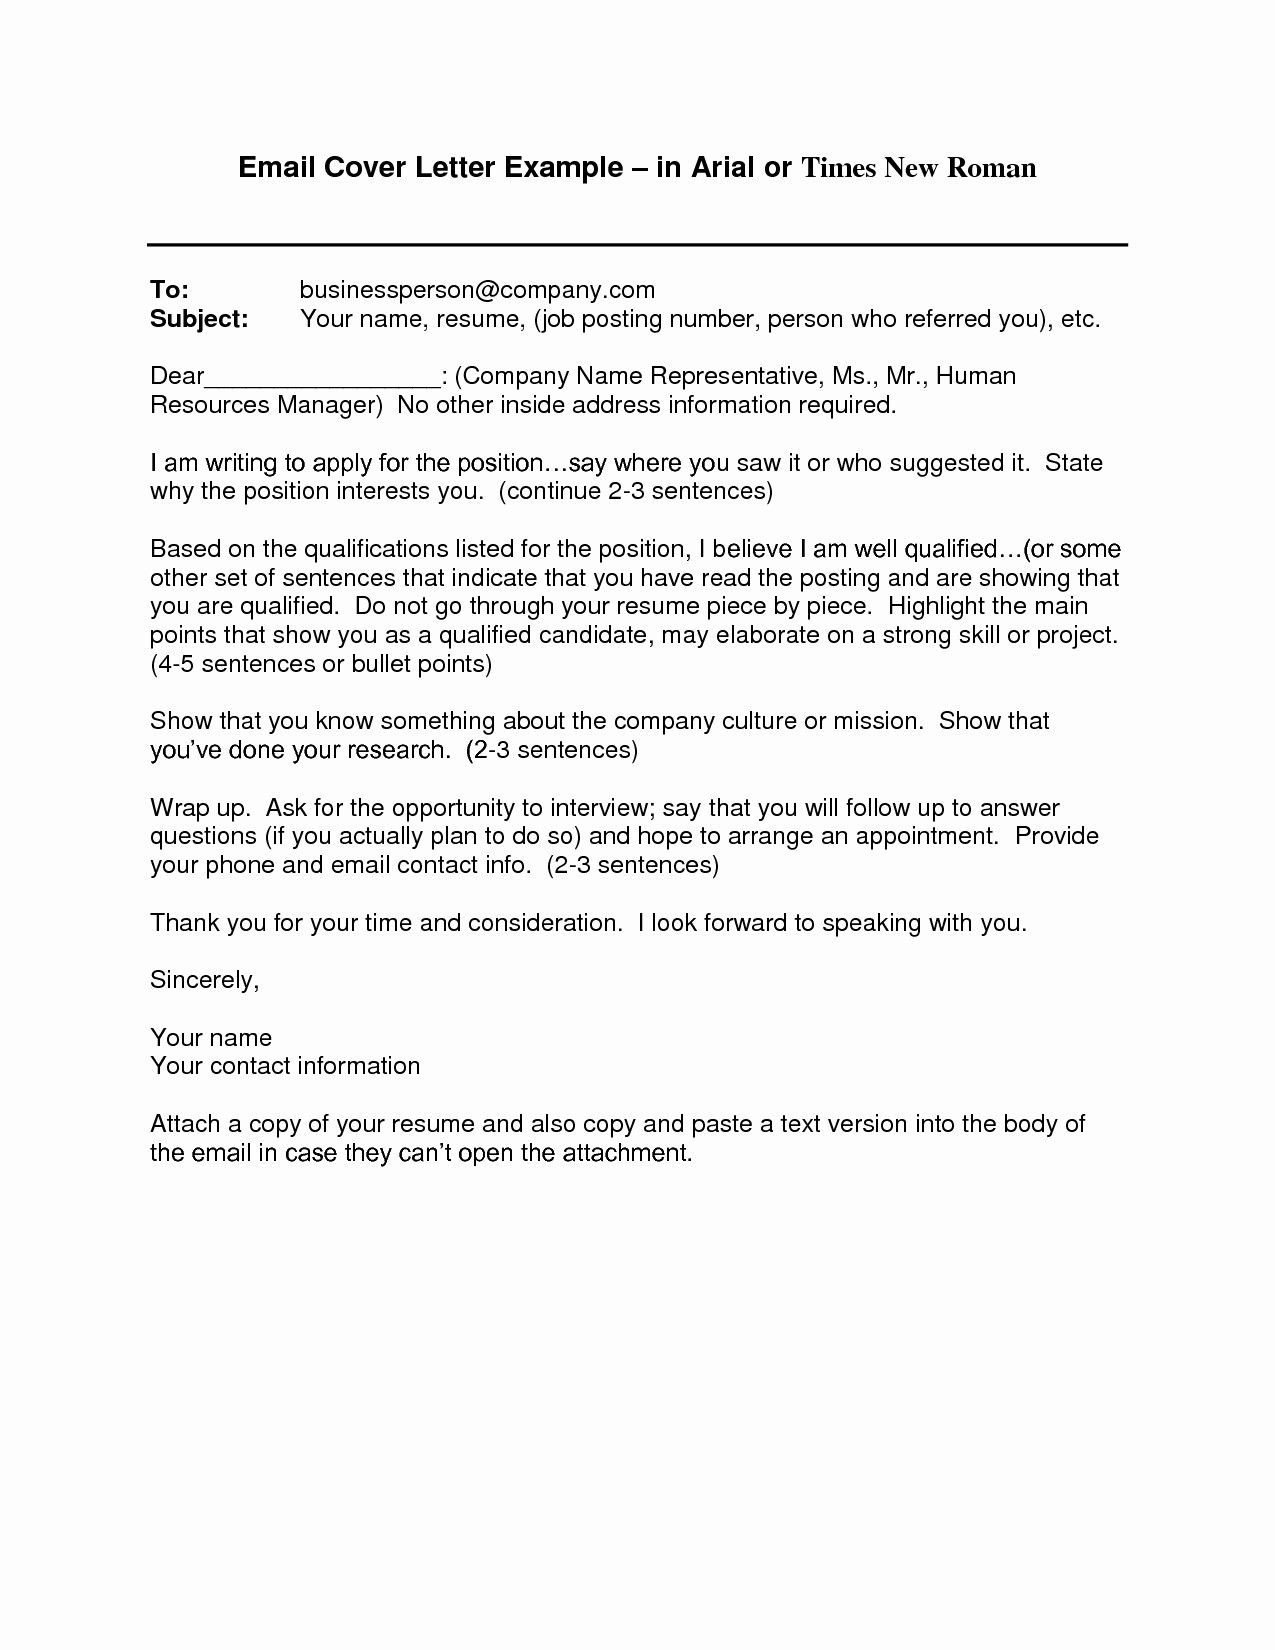 resume sample email for job application with attachment